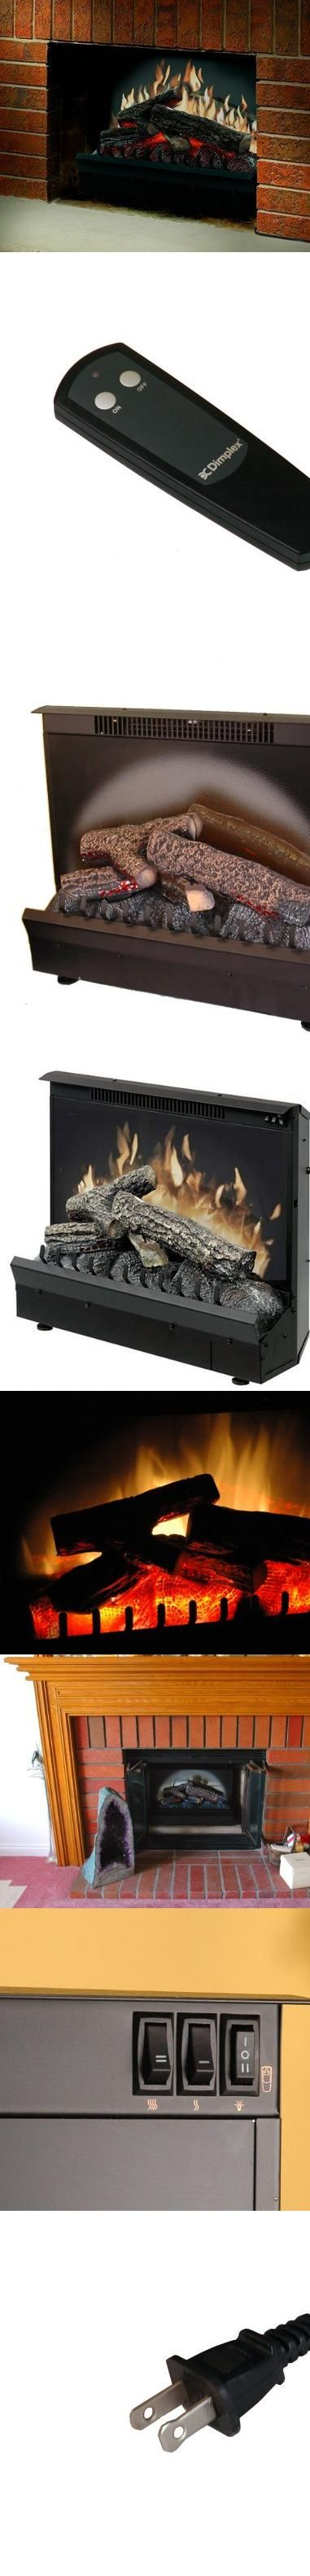 gas fireplace inserts consumer reports 28 images 100 consumer